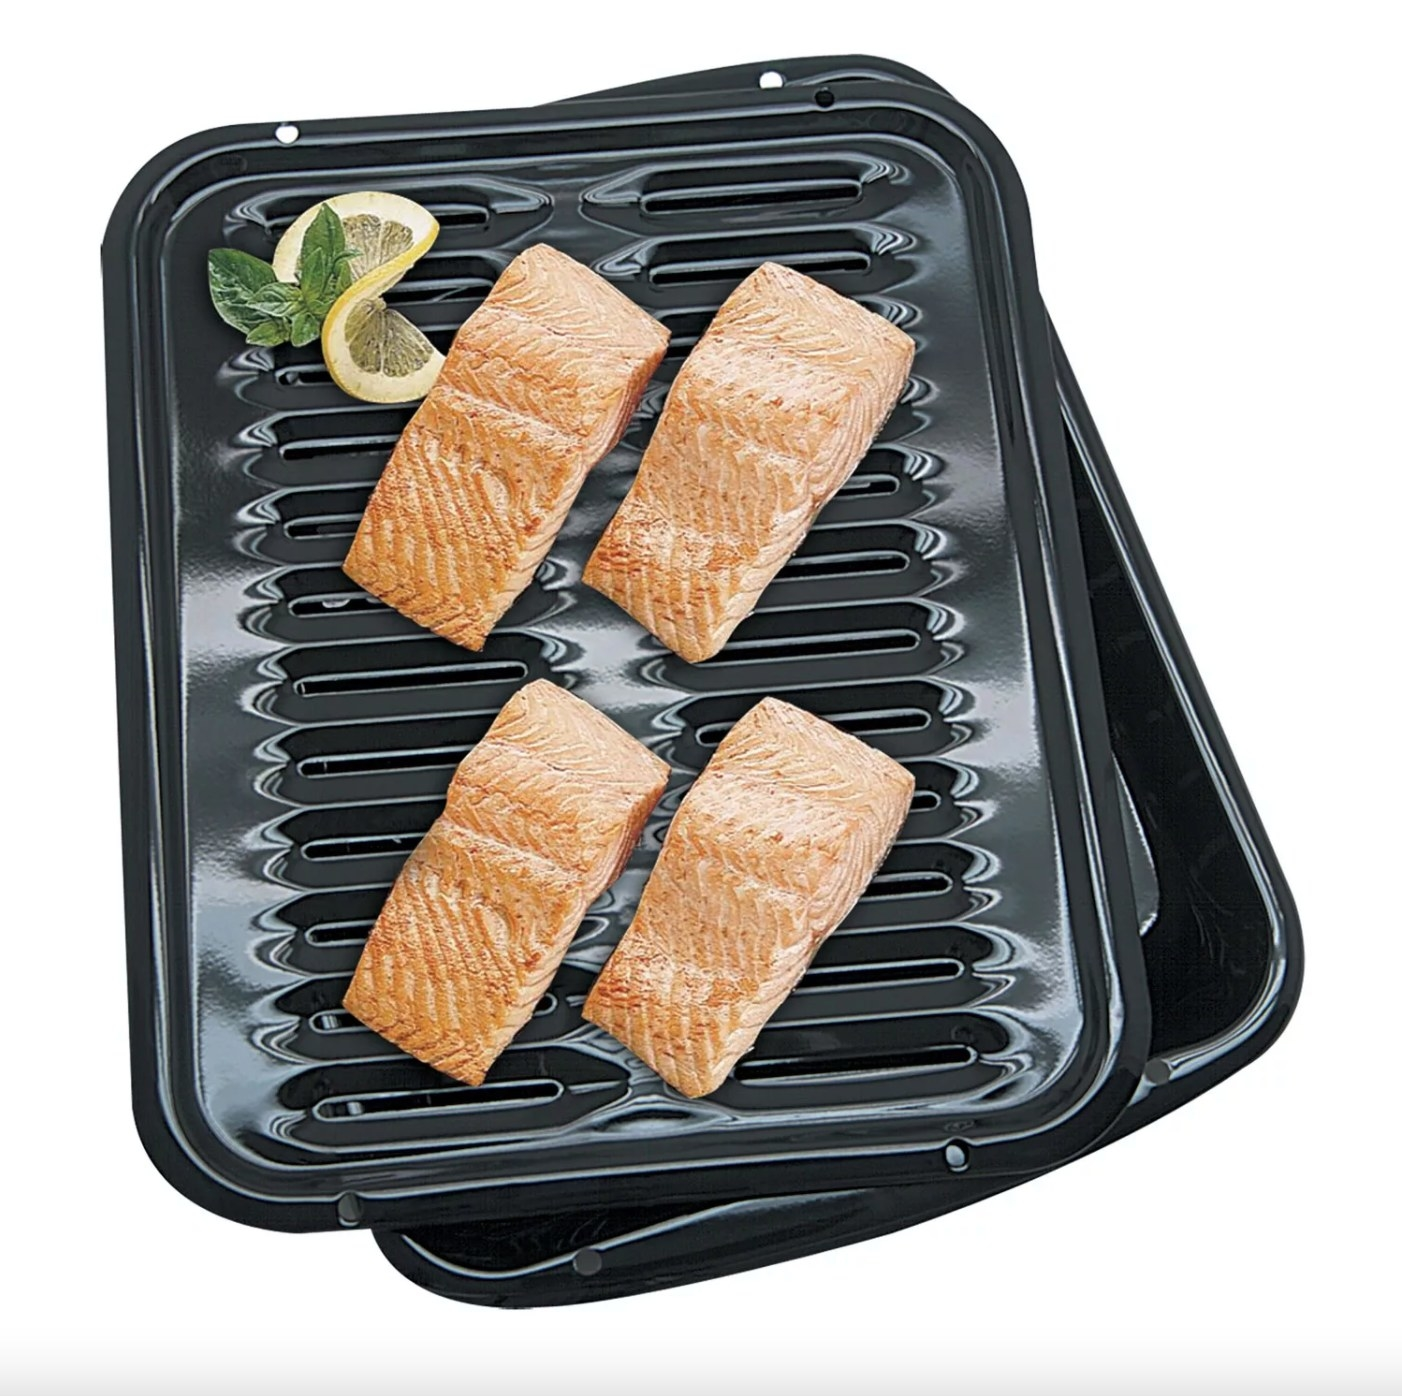 The five-piece pan set in black holding fillets of salmon, a slice of lemon, and mint